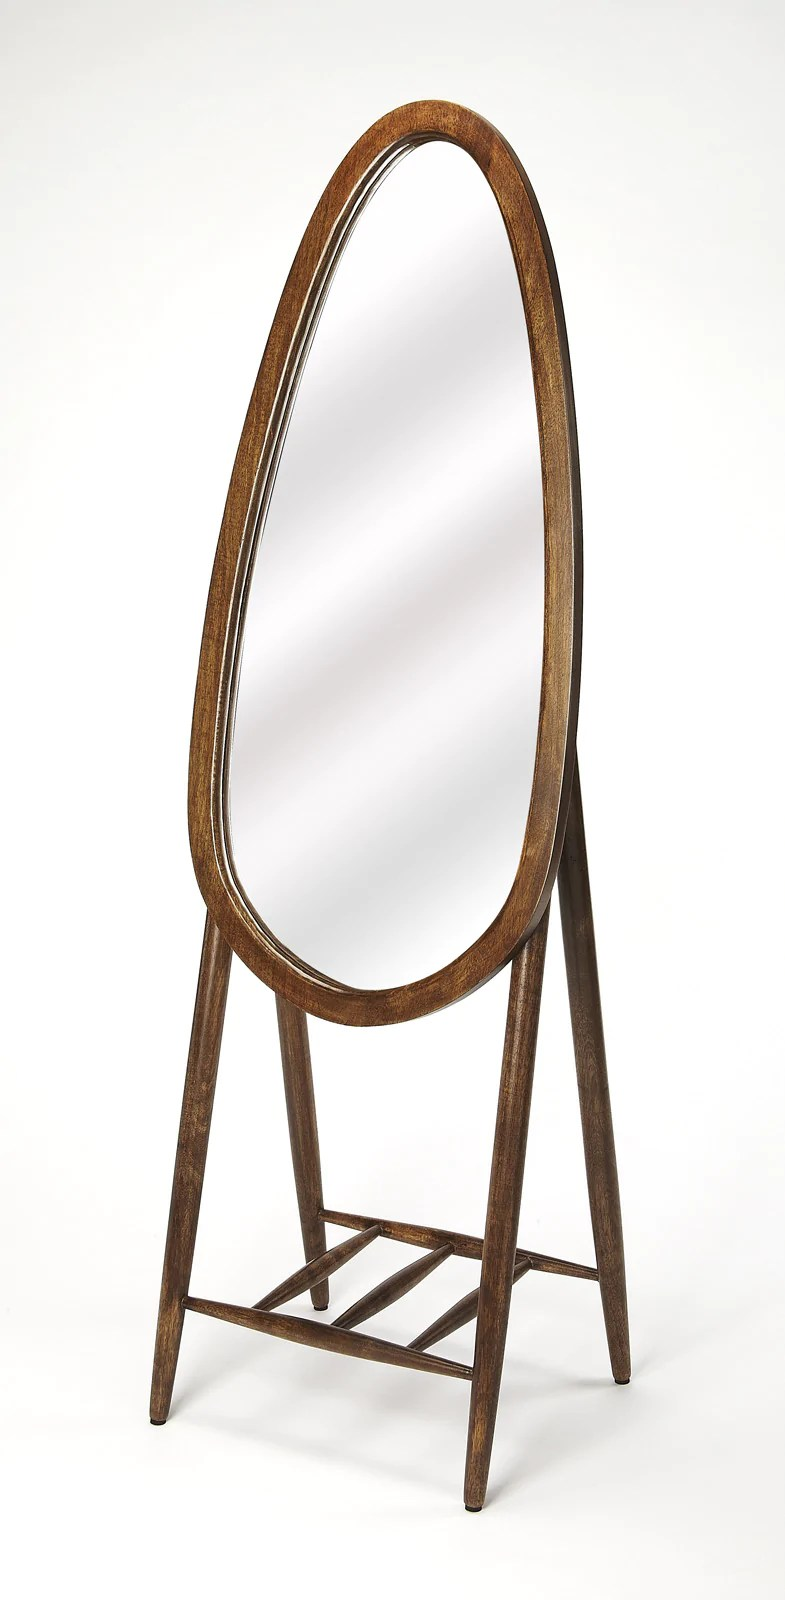 Standing Mirror Buy Butler Furniture But 4442140 Bowen Oval Floor Standing Mirror At Contemporary Furniture Warehouse